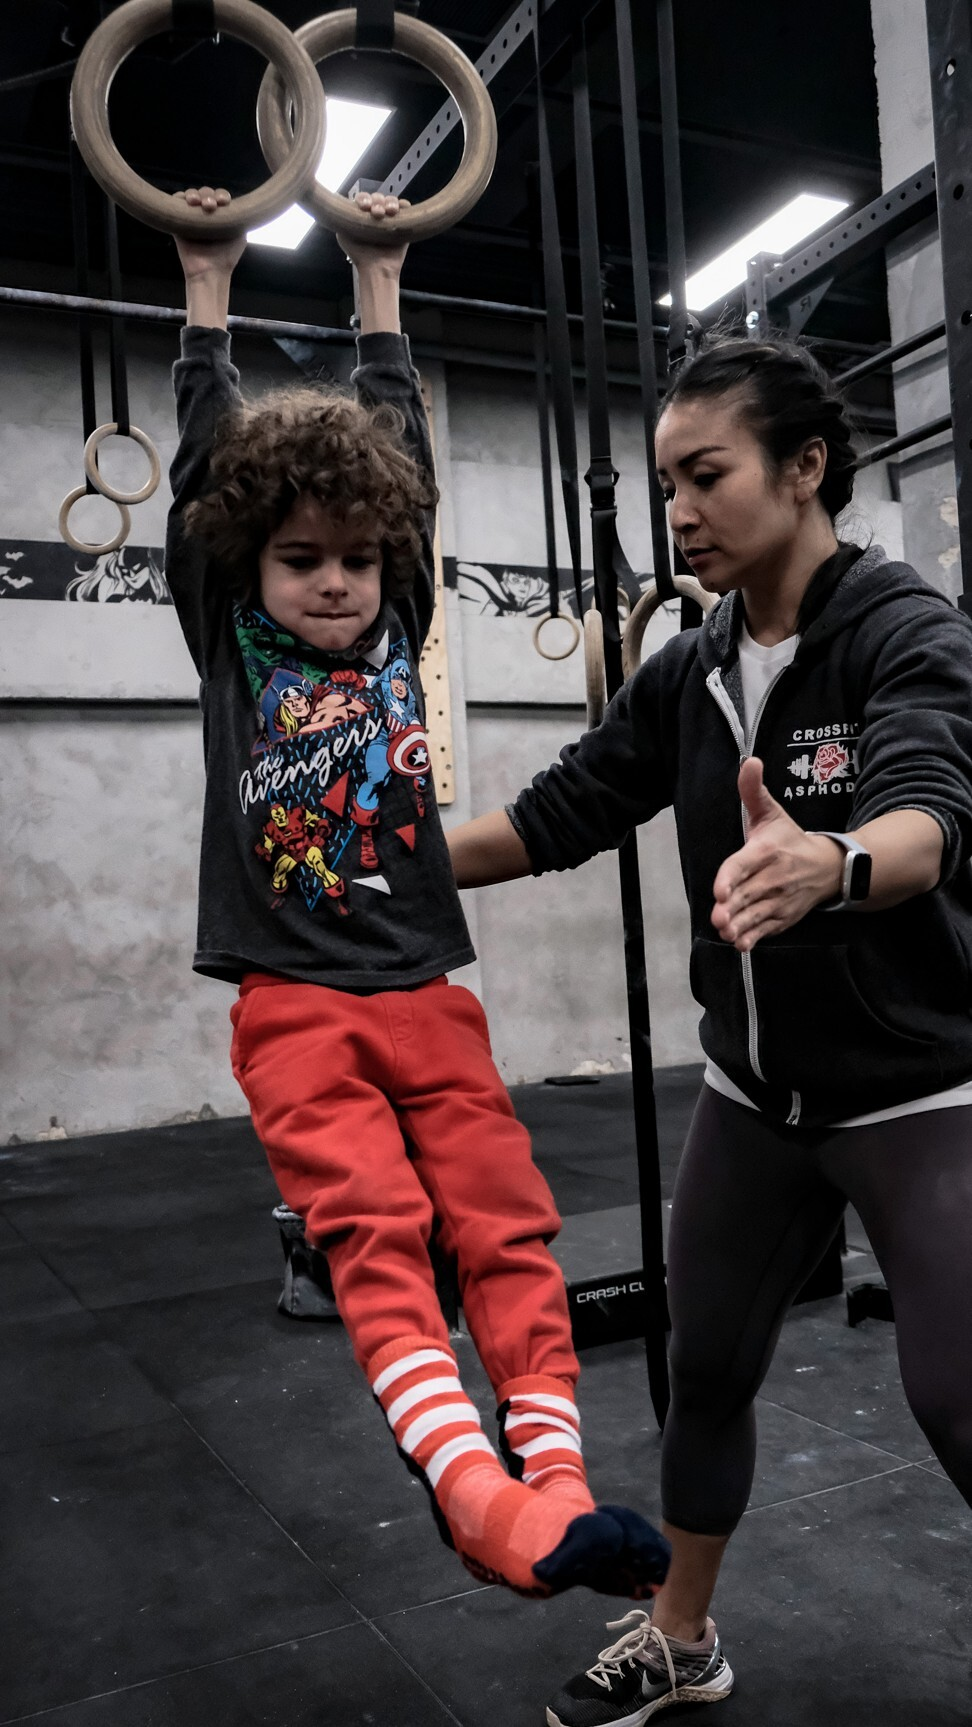 Michelle O'Brien helps a child on the rings. Photo: Handout